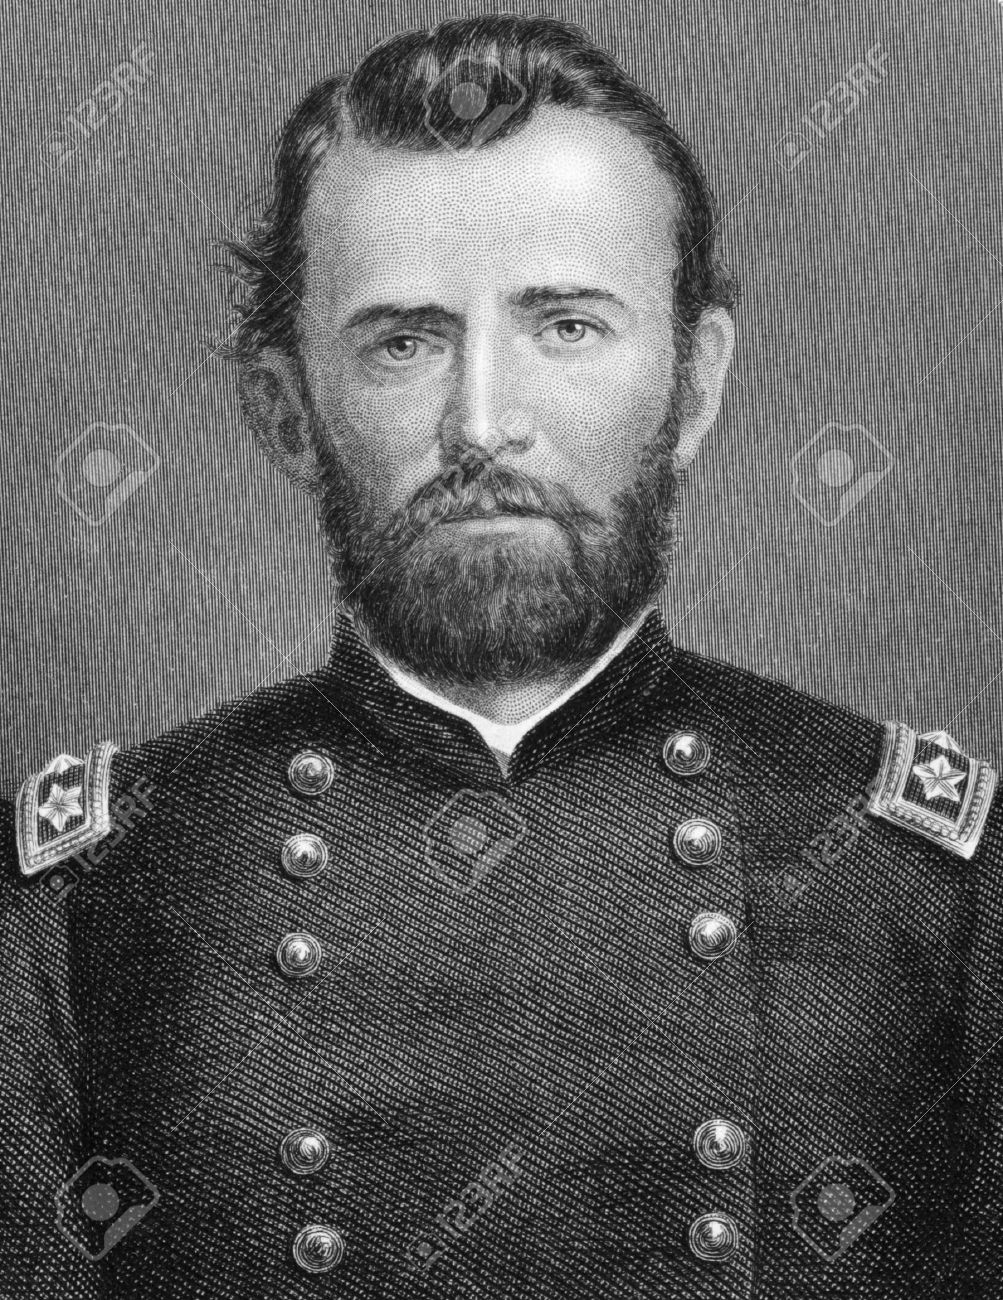 candyman 1 royalty photos pictures images and stock ulysses s grant 1822 1885 on engraving from 1800s 18th president